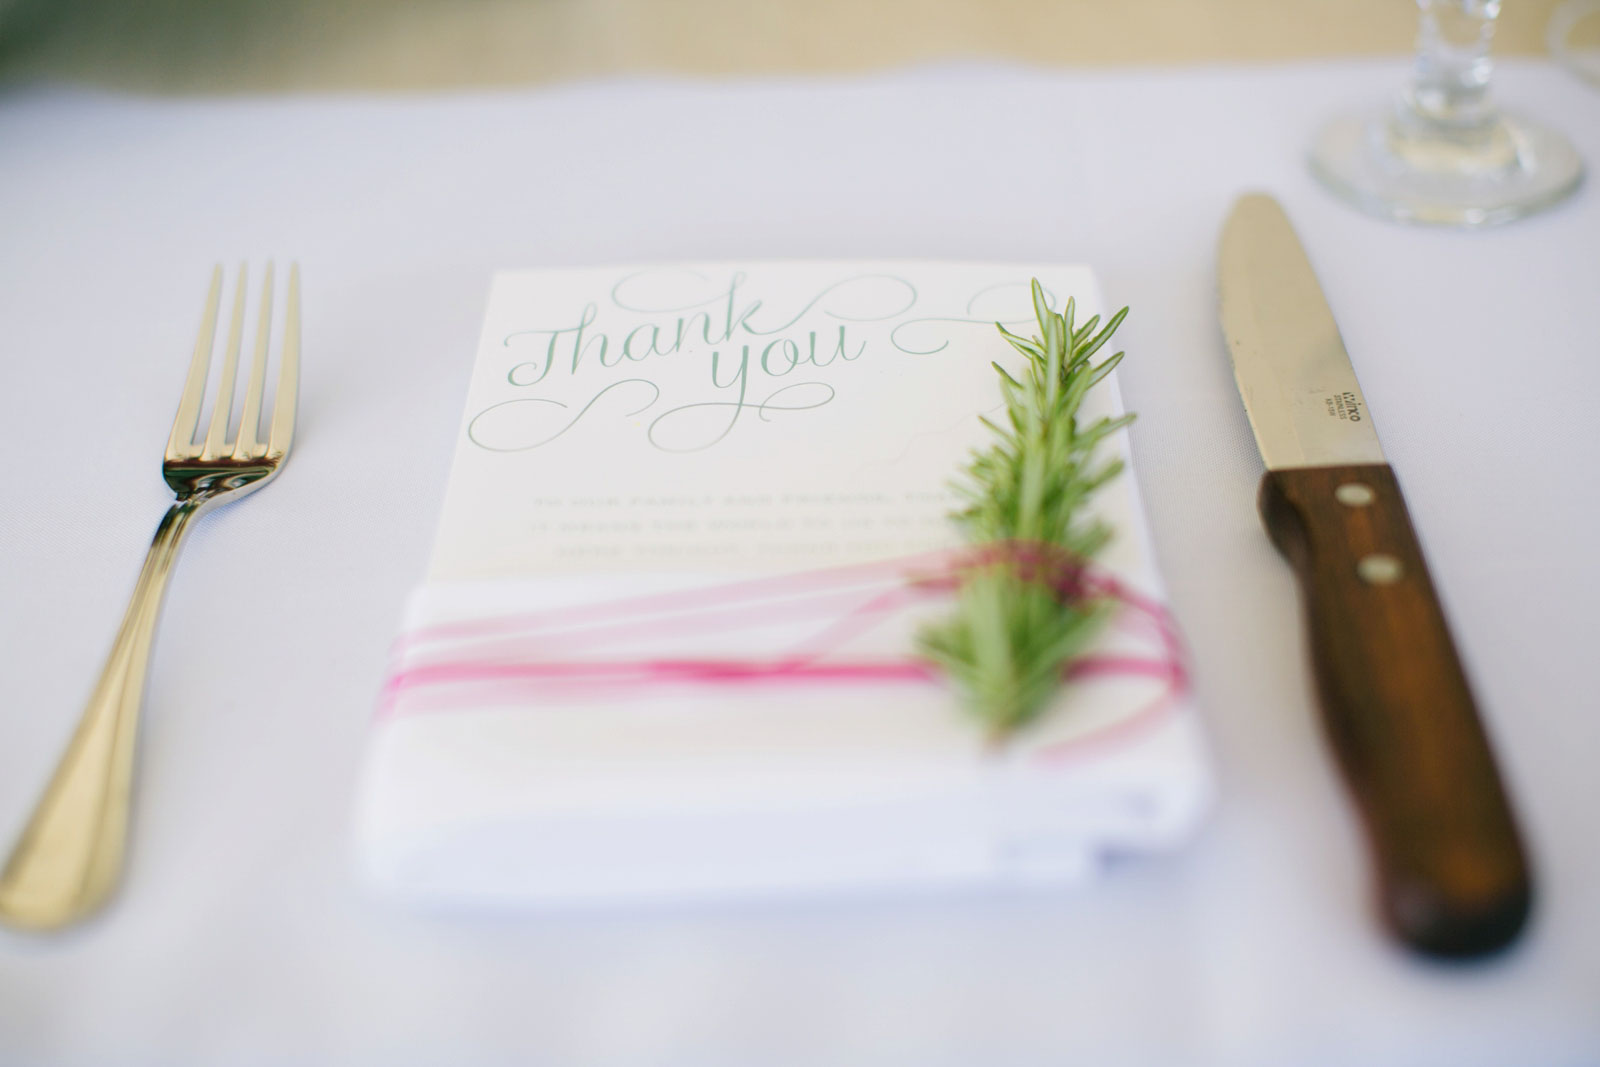 Detail of place setting with thank you note and rosemary sprig tied to menu with pink ribbon.